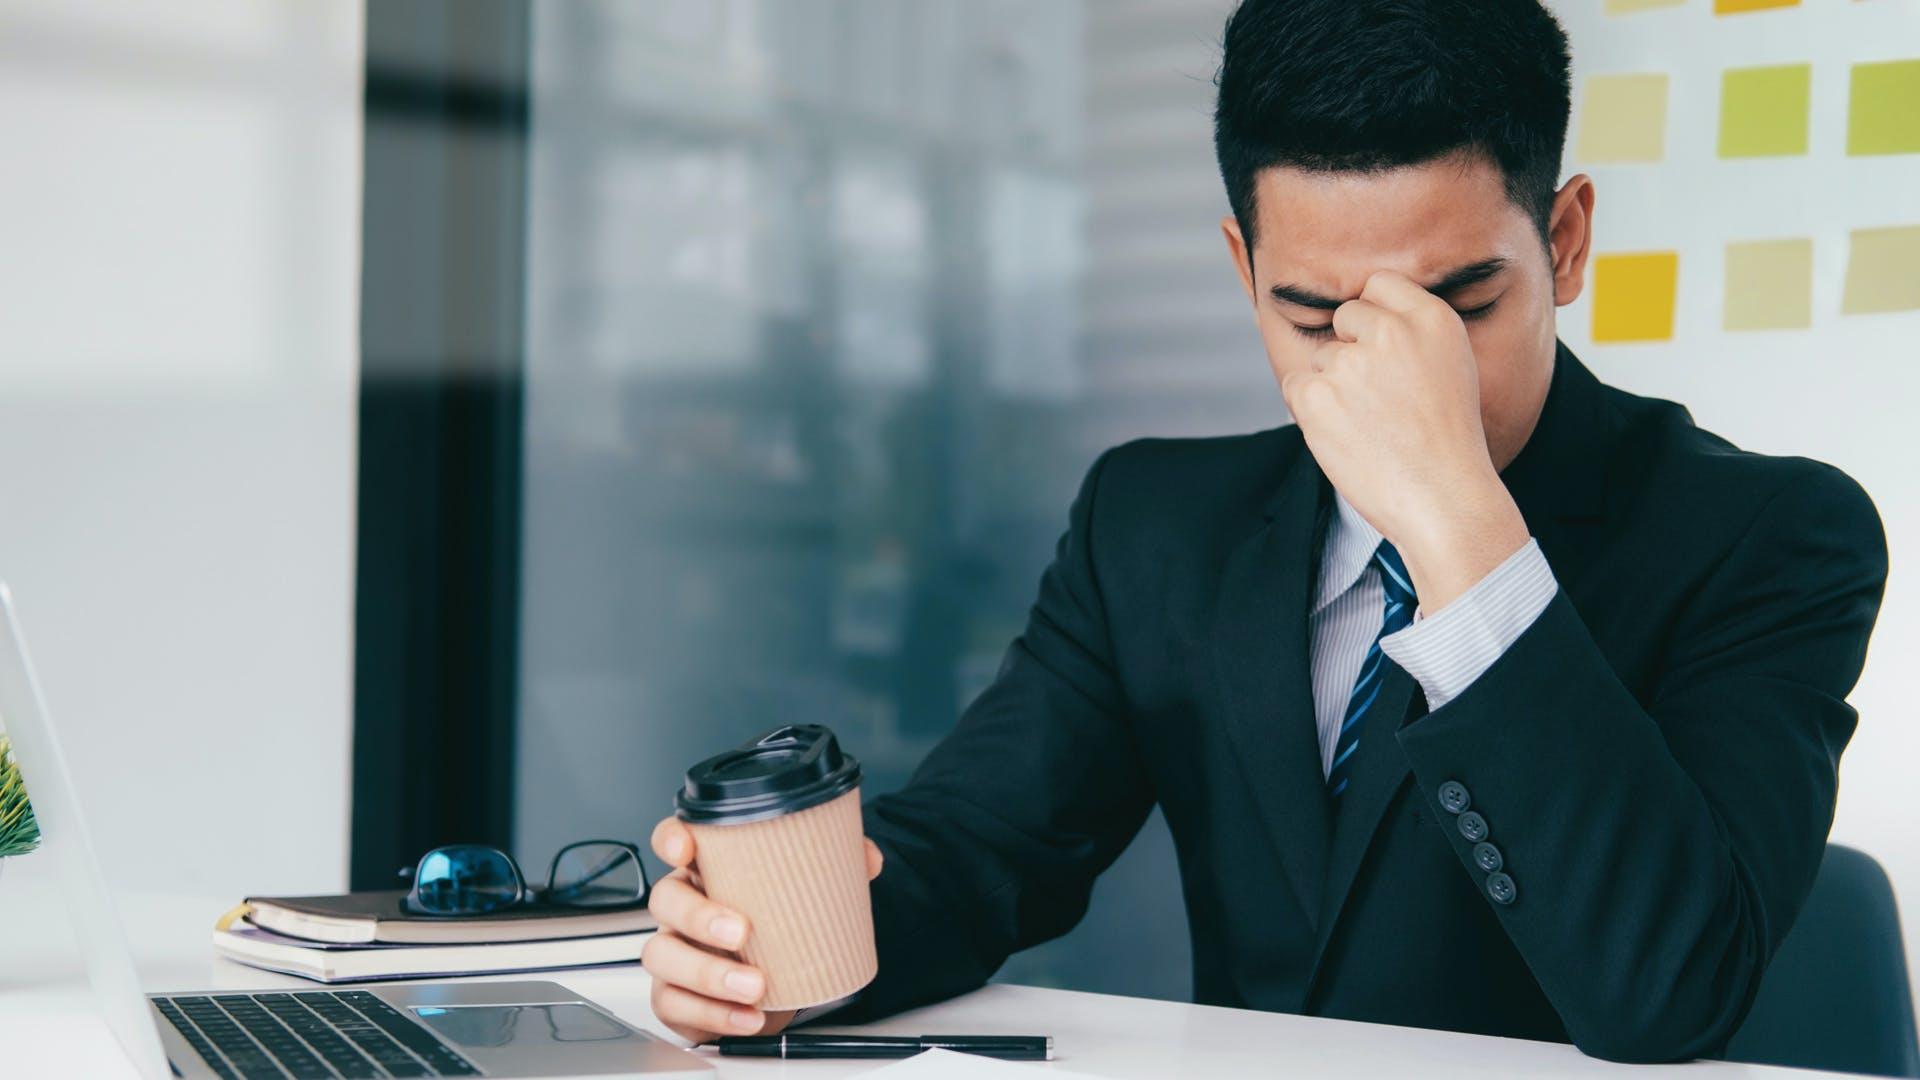 The Solution to Your Work Stress May Not Be About Work